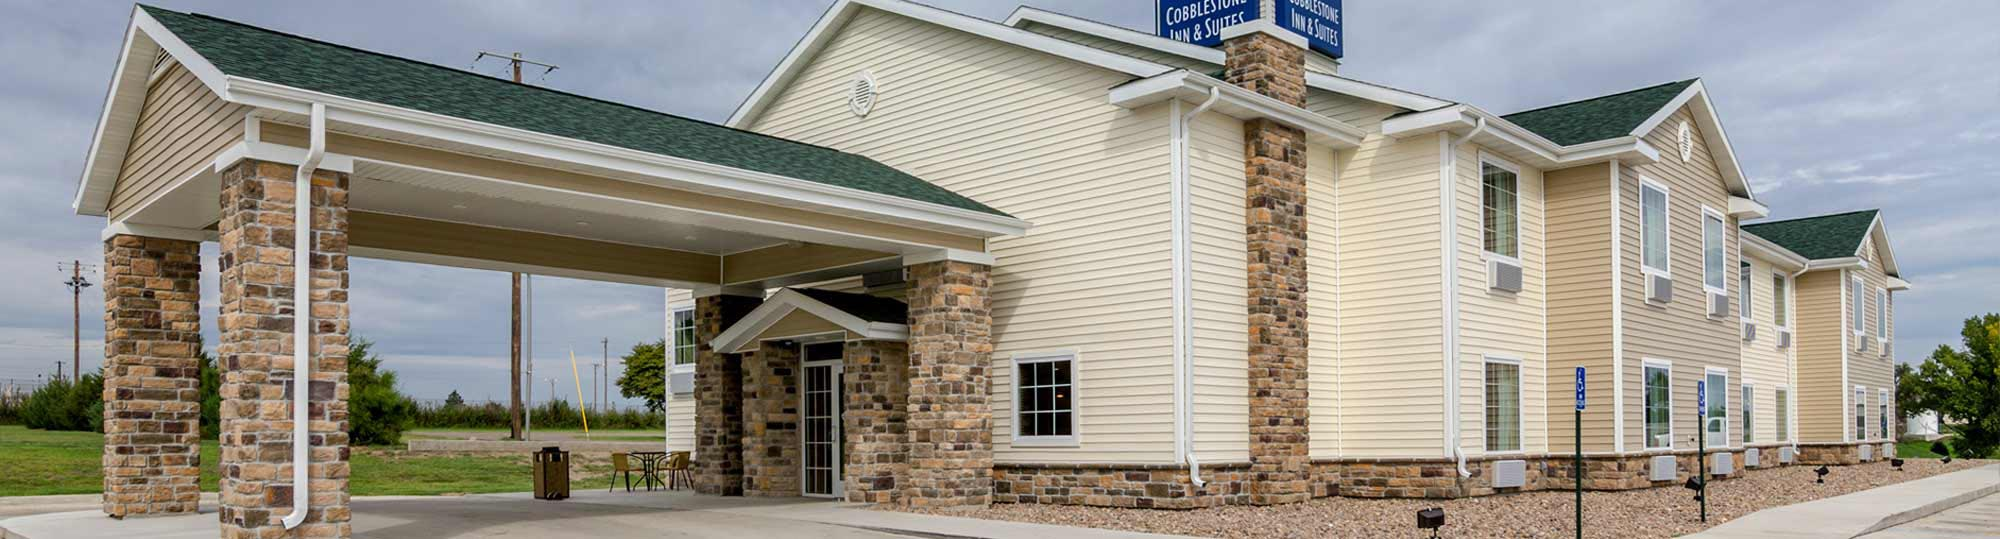 Cobblestone Inn and Suites Oberlin